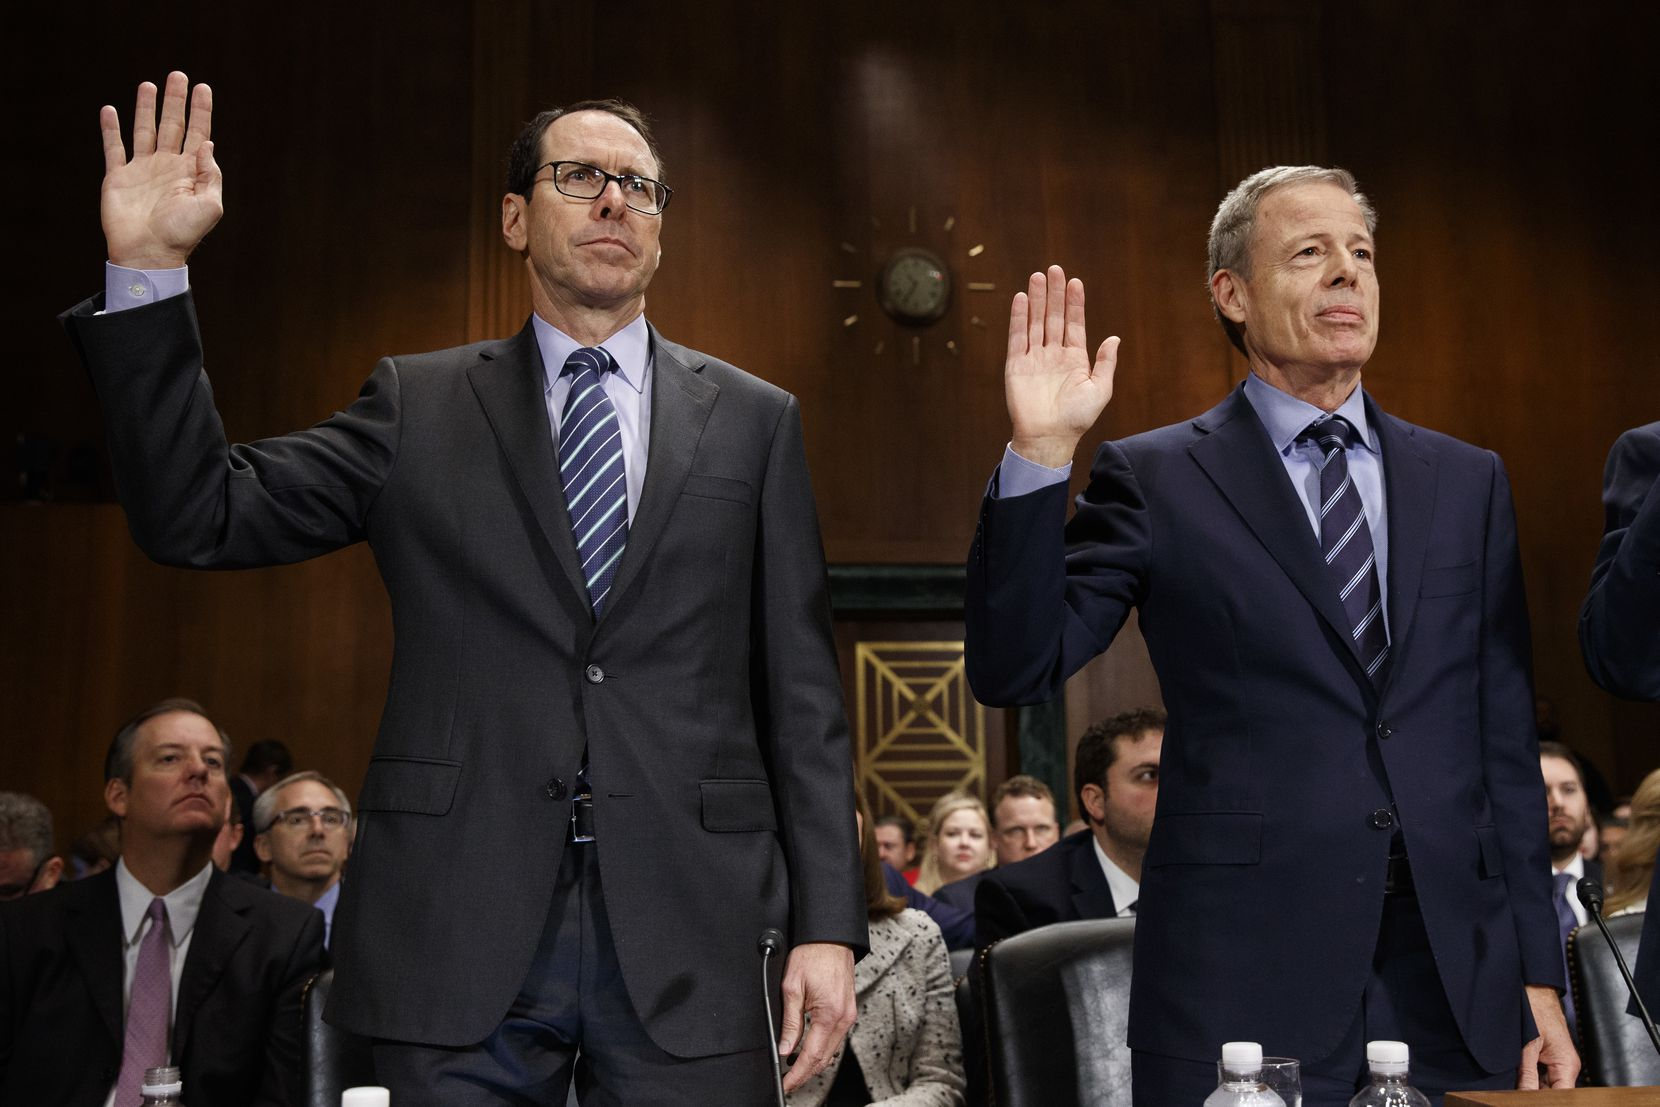 AT&T Chairman and CEO Randall Stephenson, left, and Time Warner Chairman and CEO Jeffrey Bewkes are sworn in on Capitol Hill in Washington, Wednesday, Dec. 7, 2016, prior to testifying before a Senate Judiciary subcommittee hearing on the proposed merger between AT&T and Time Warner.